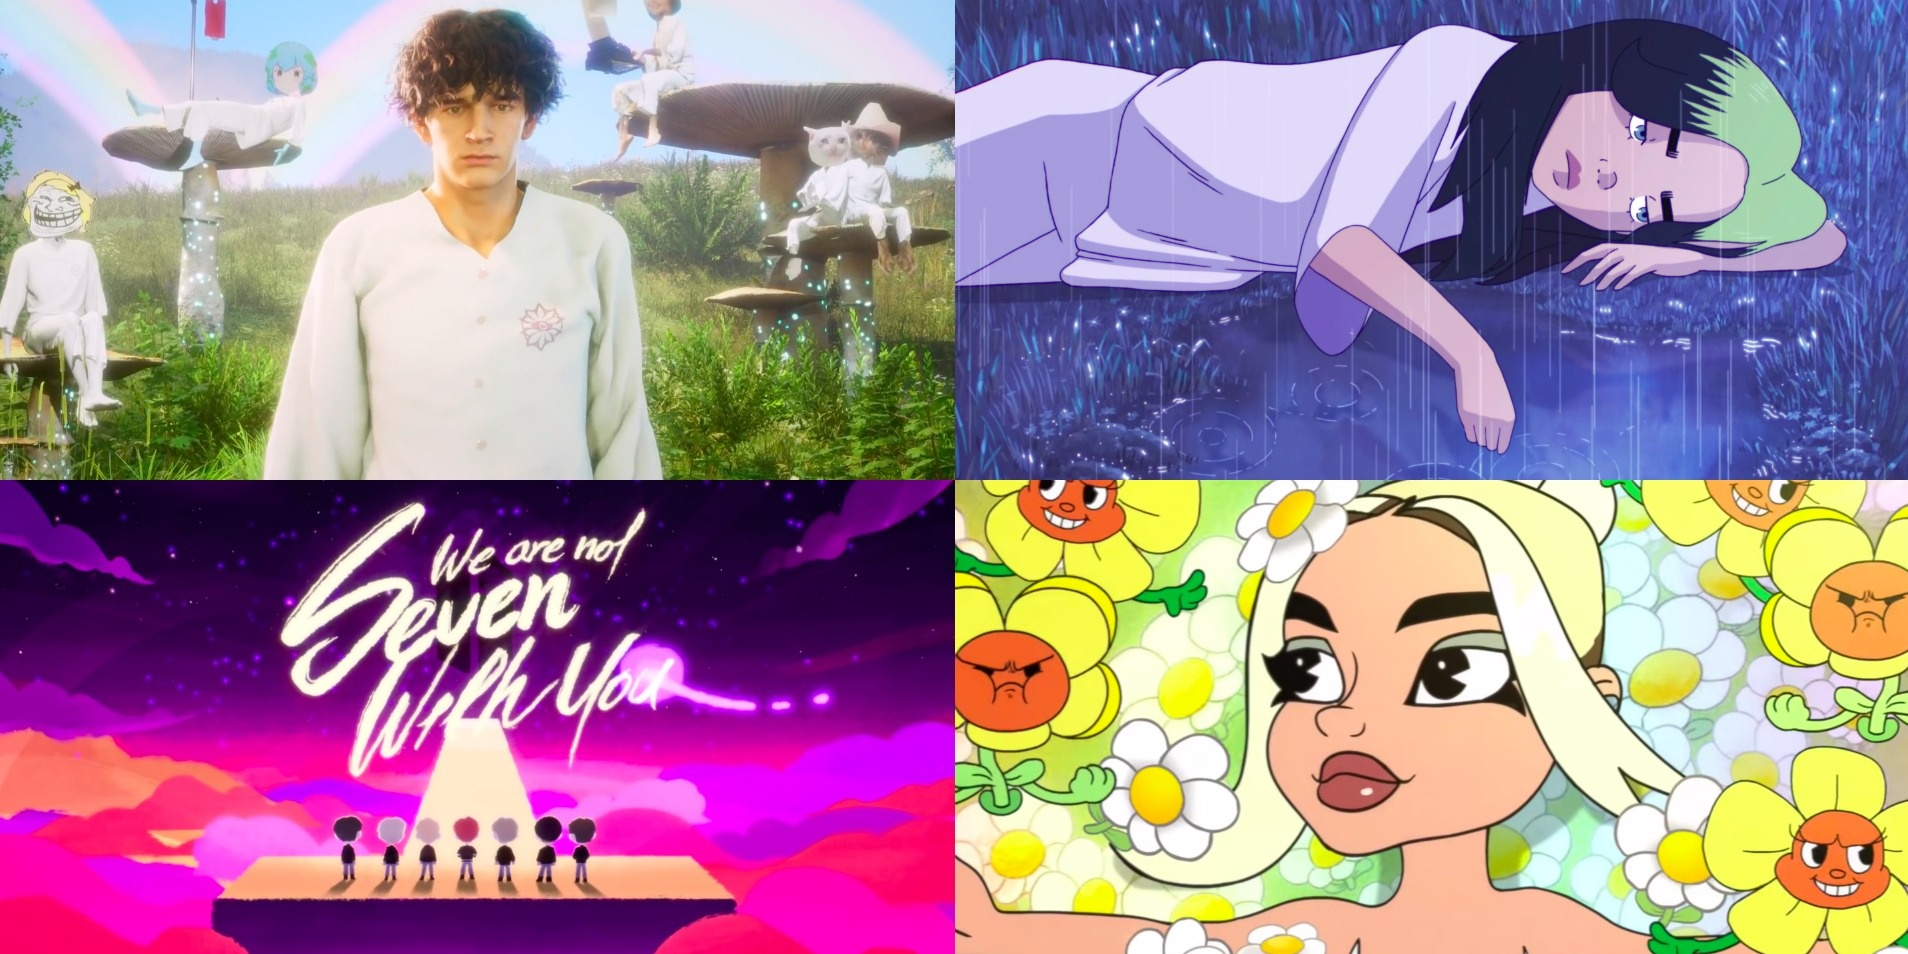 20 animated music videos from 2020 you should check out: BTS, Billie Eilish, Dua Lipa, and more